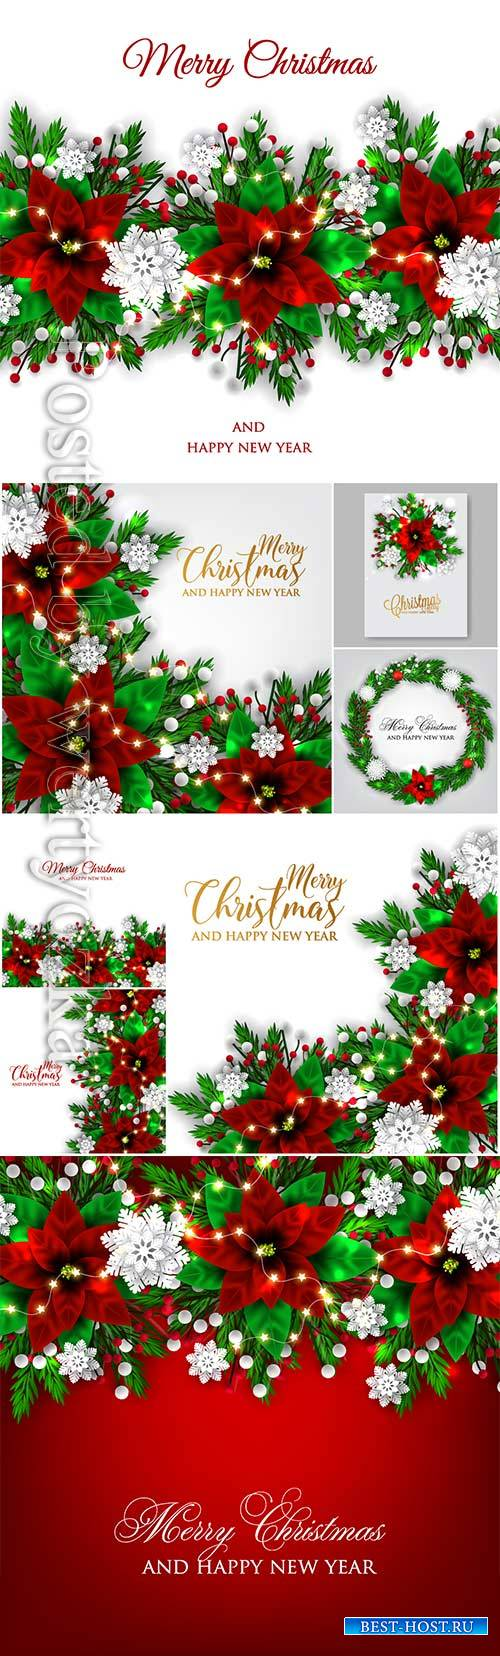 2020 Merry Chistmas and Happy New Year vector illustration # 9